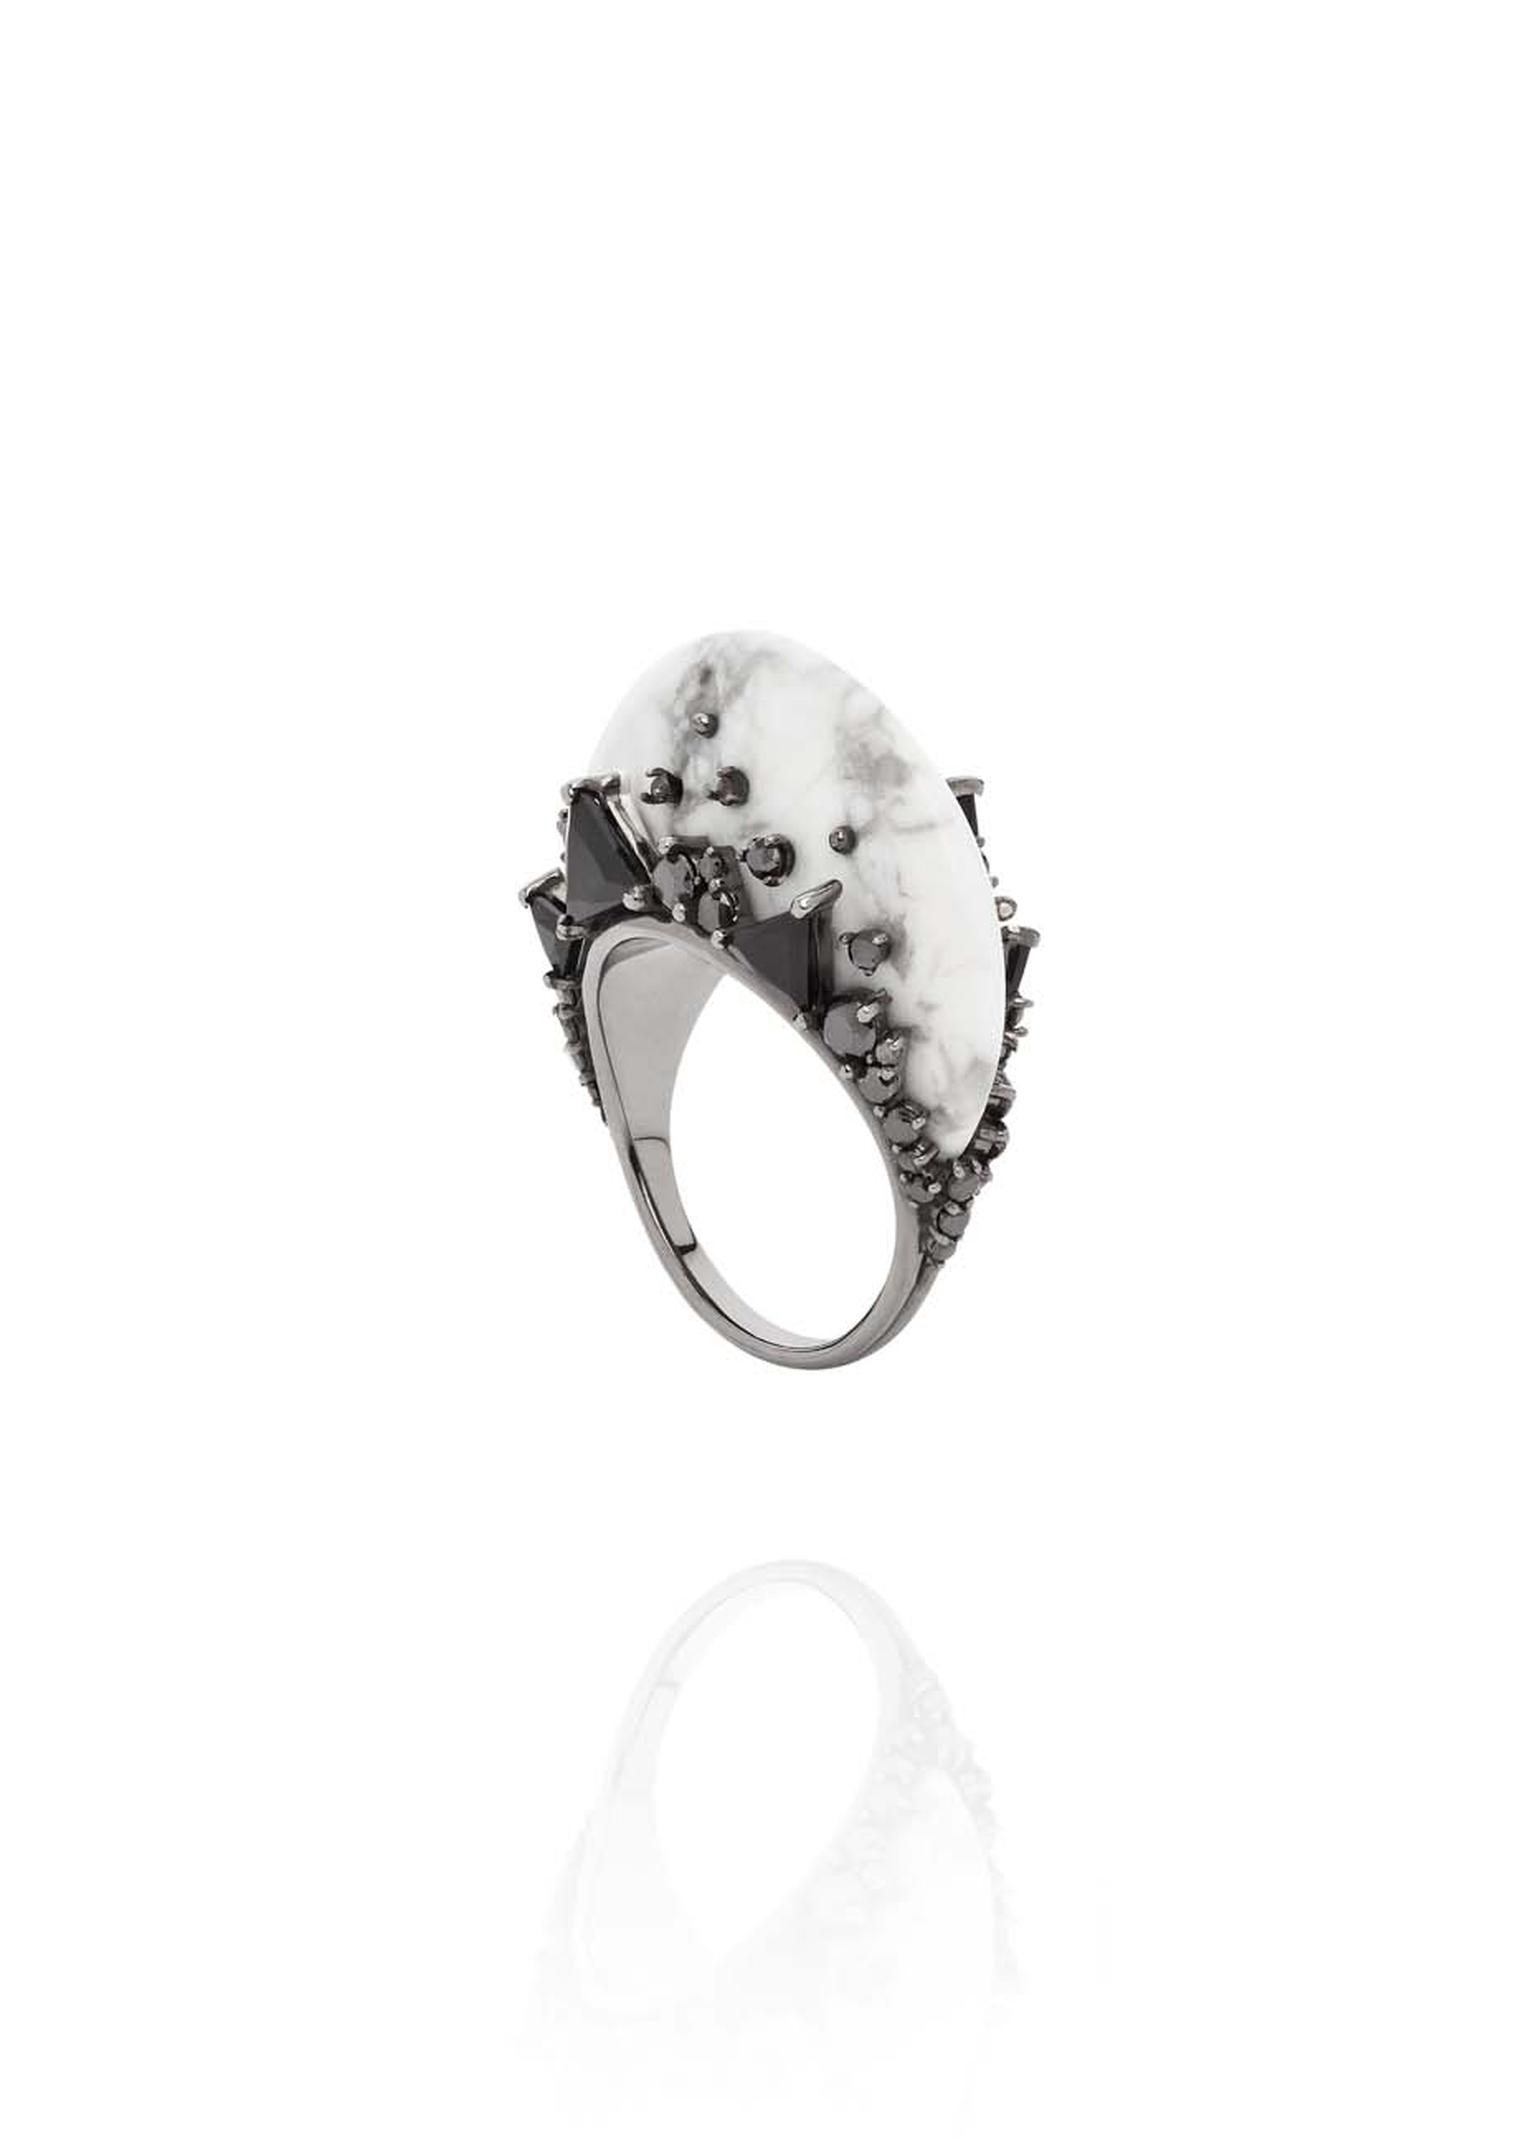 Fernando Jorge Fusion Tall Ring in black rhodium plated gold with black diamonds, black jade and howlite.